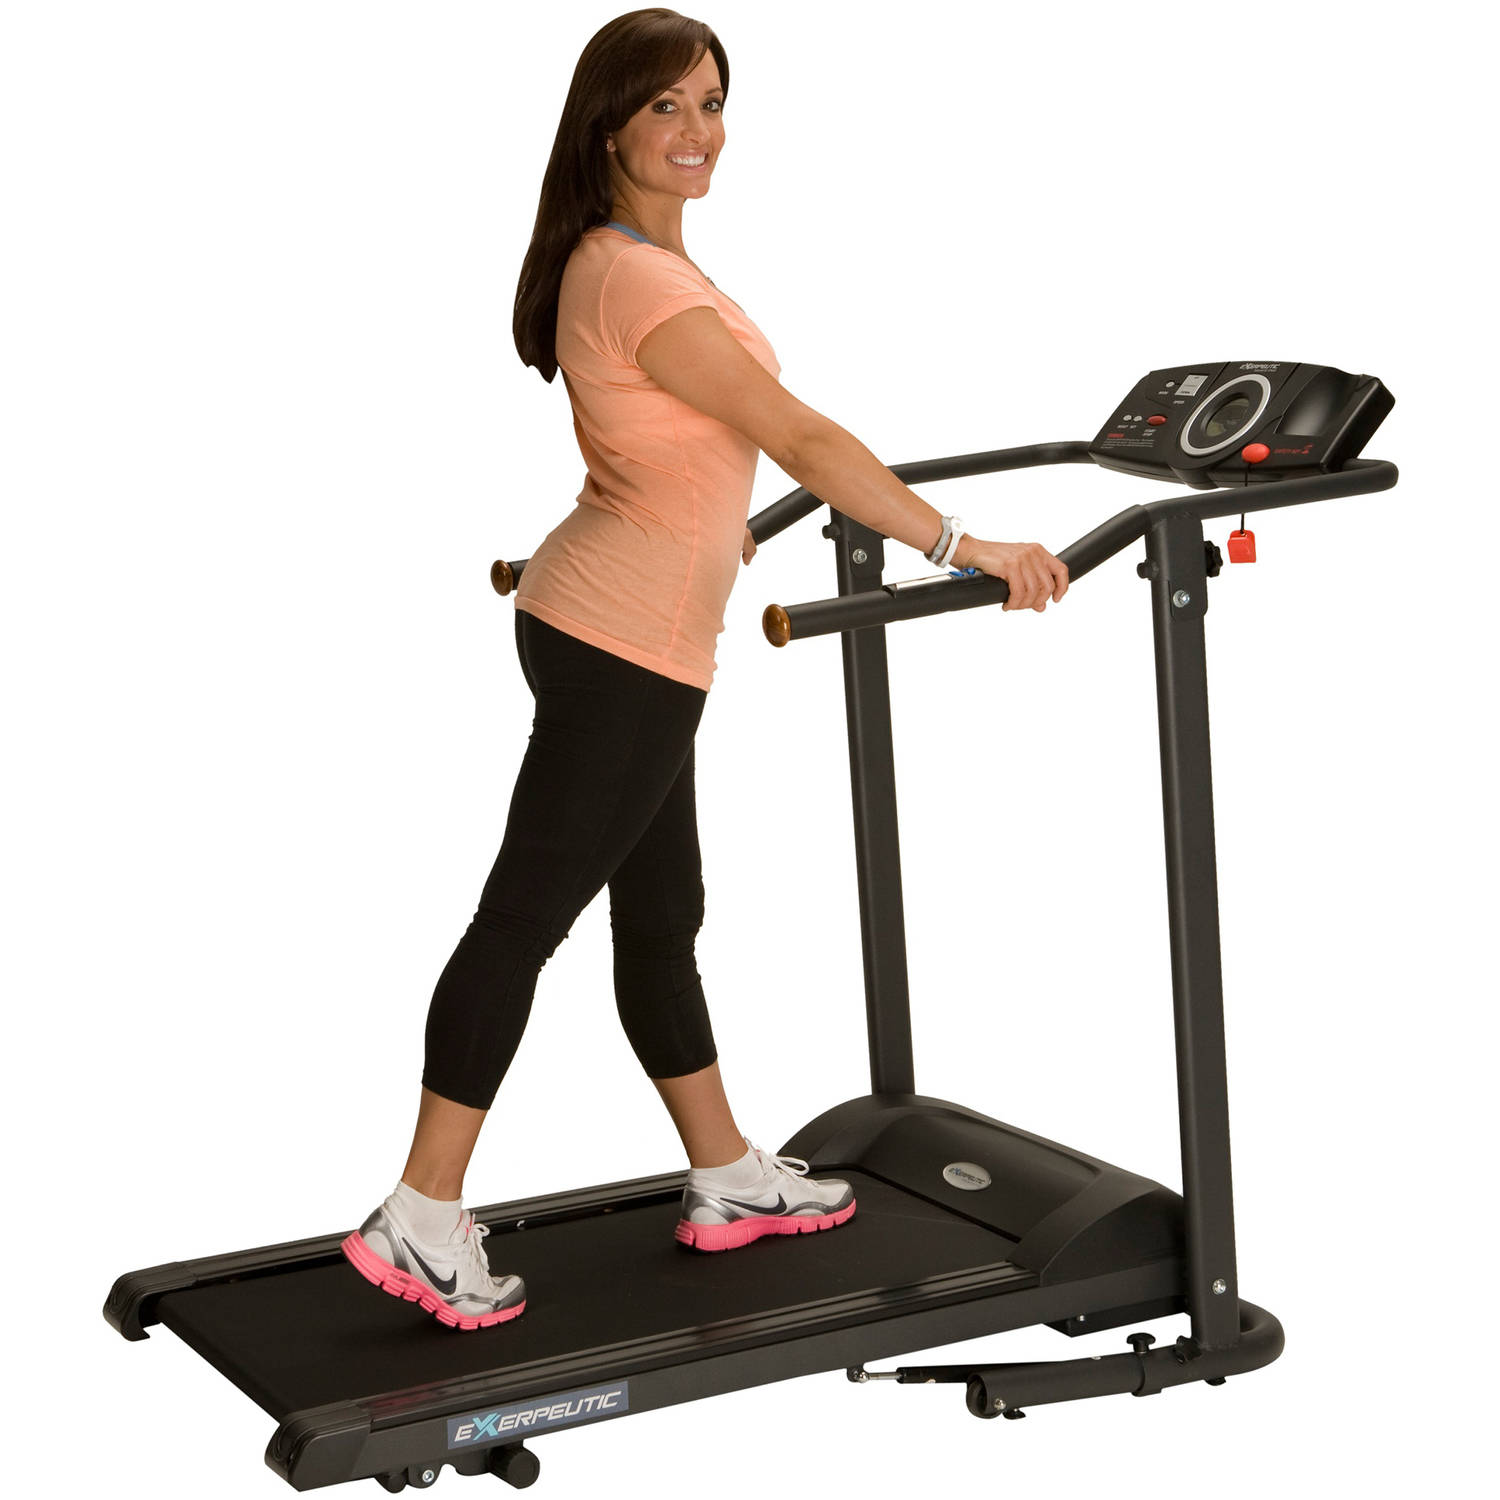 Exerpeutic 440XL Super Heavy Duty Walking Treadmill with Wide Belt